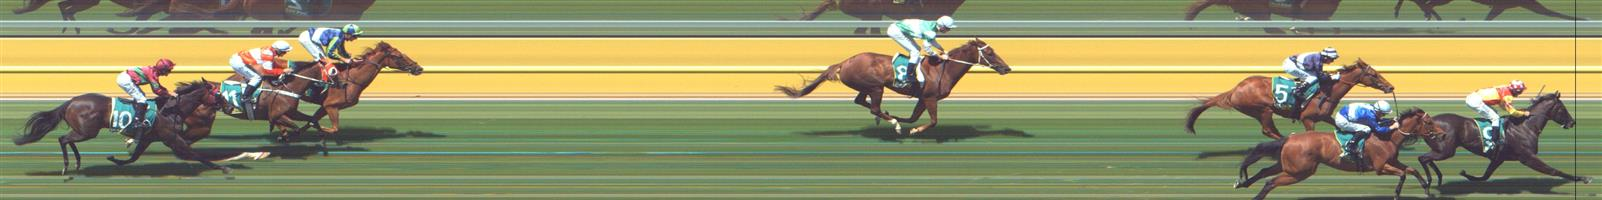 Kyneton Race 3 No.1 Croatian @ $6 (1 UNIT WIN)   Result:  Non Qualifier - 2nd at SP $11.00